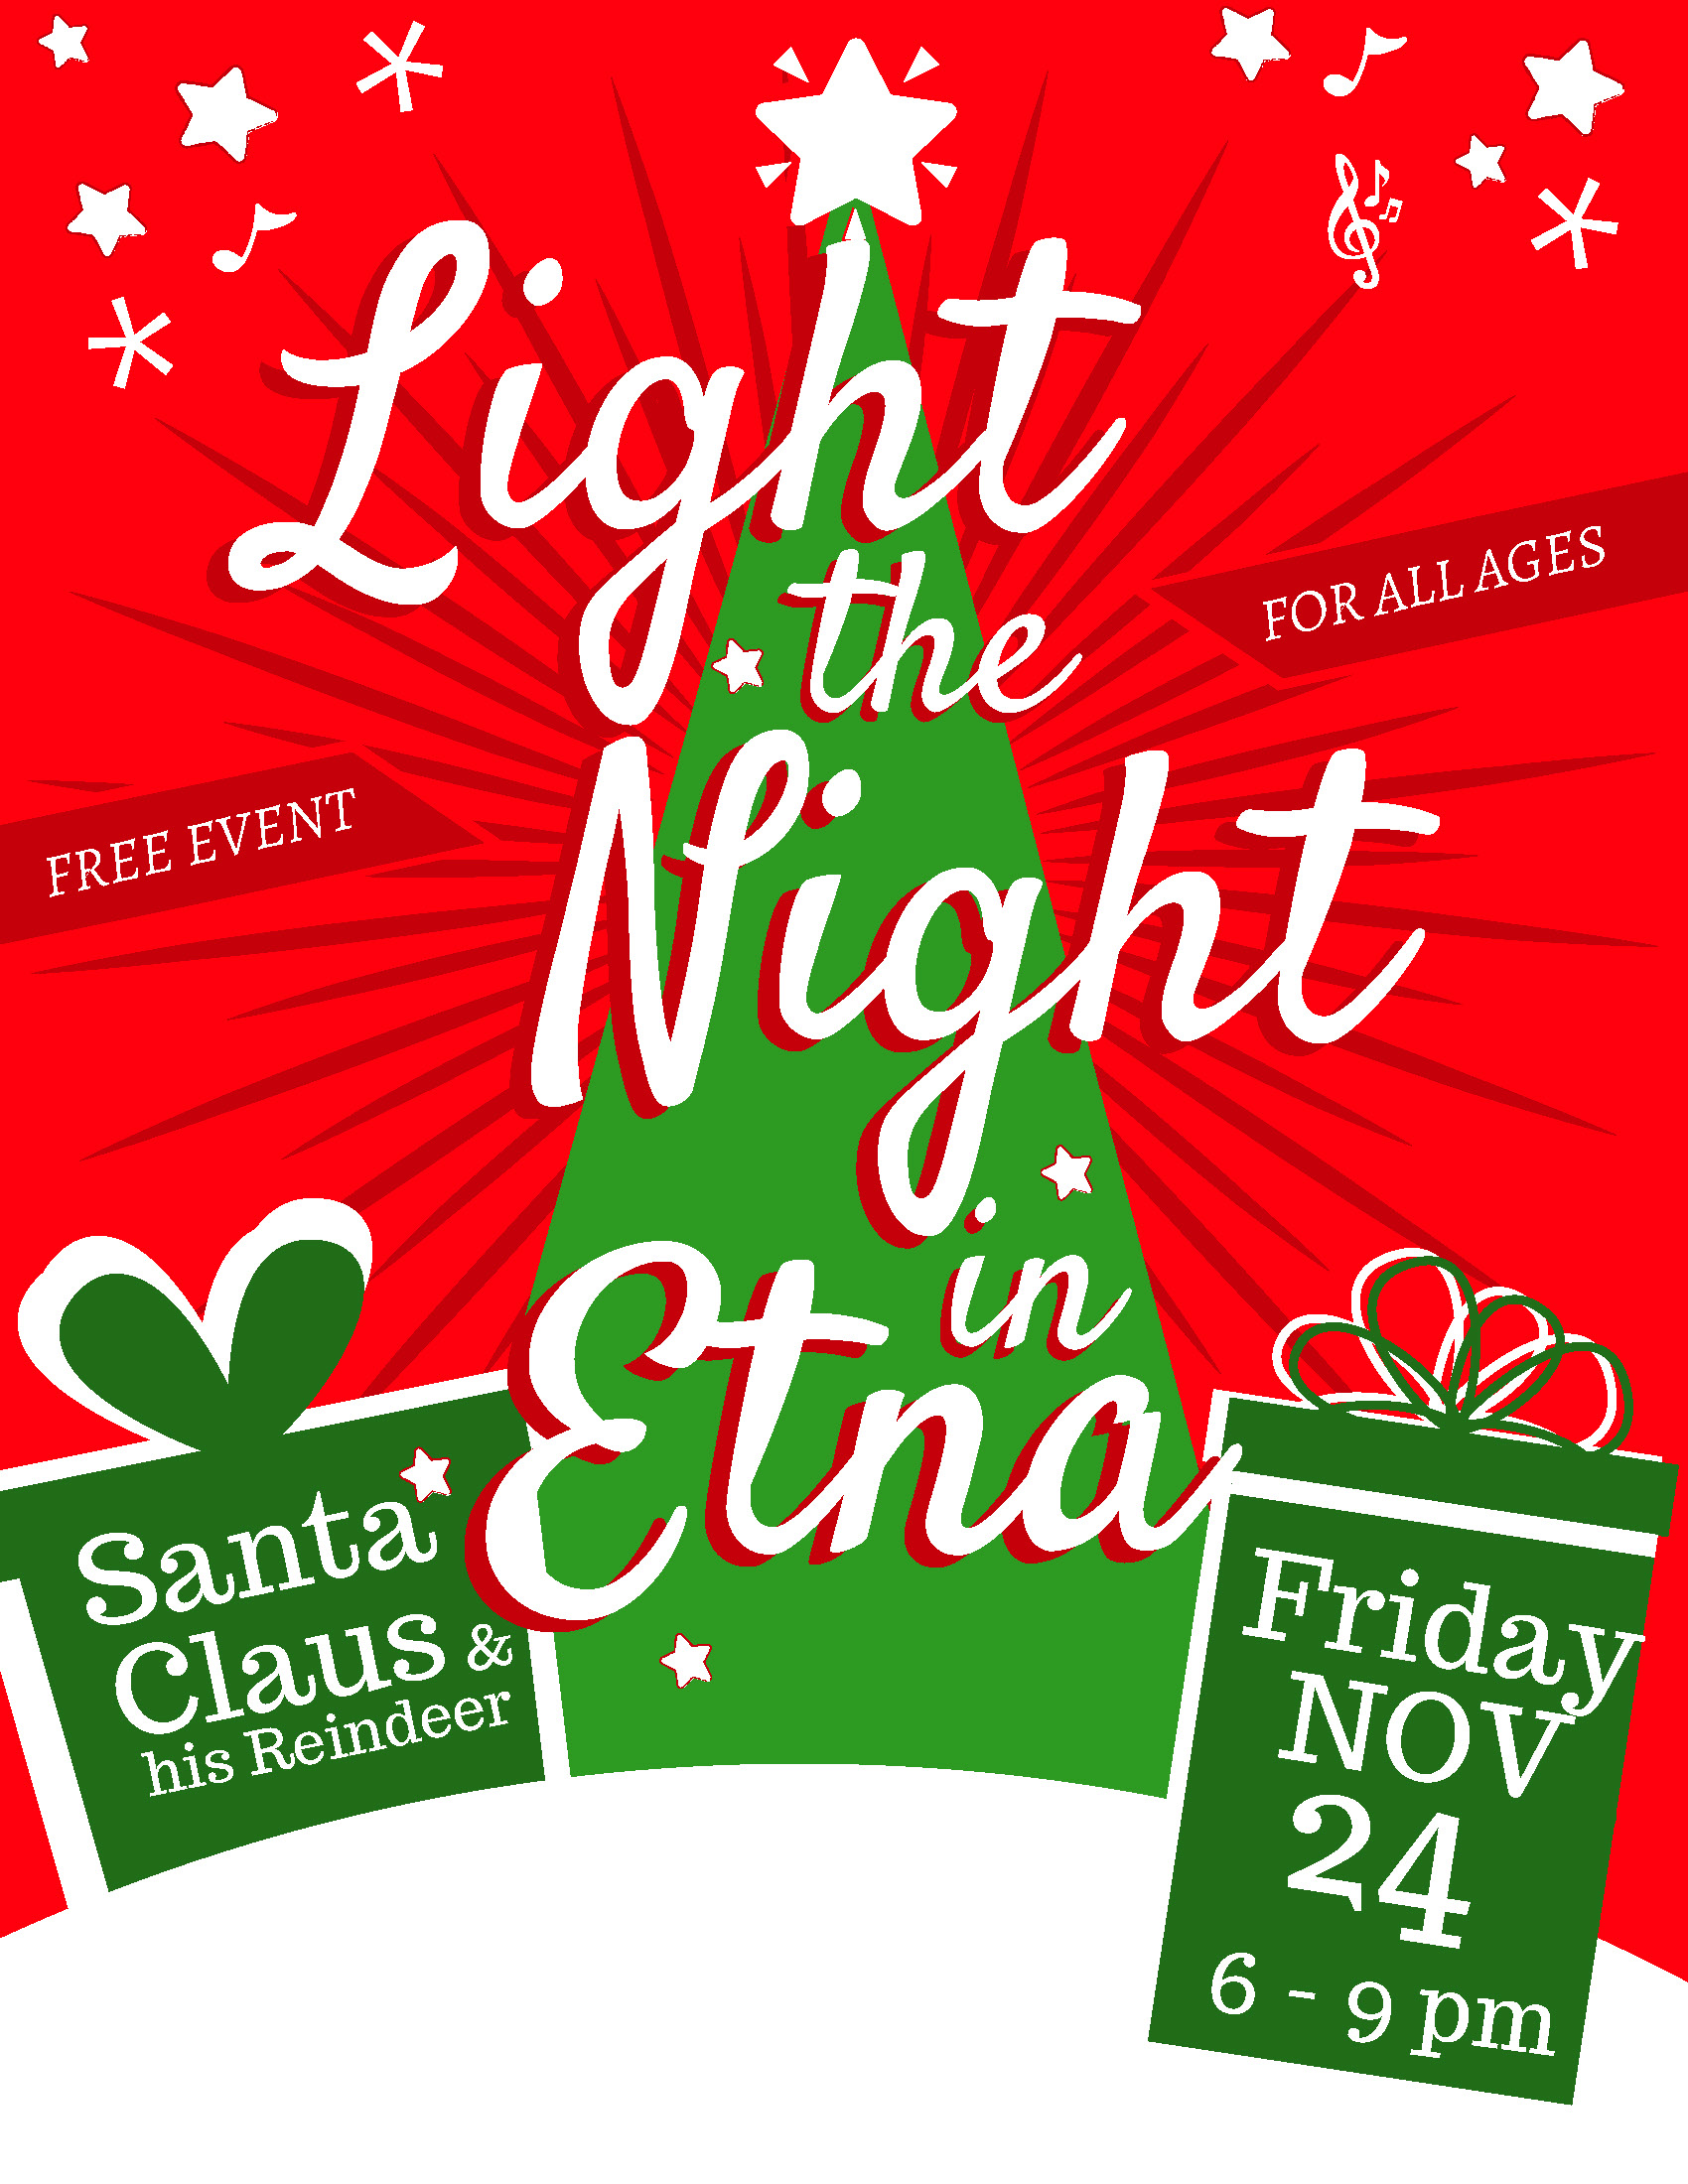 Light the Night in Etna!